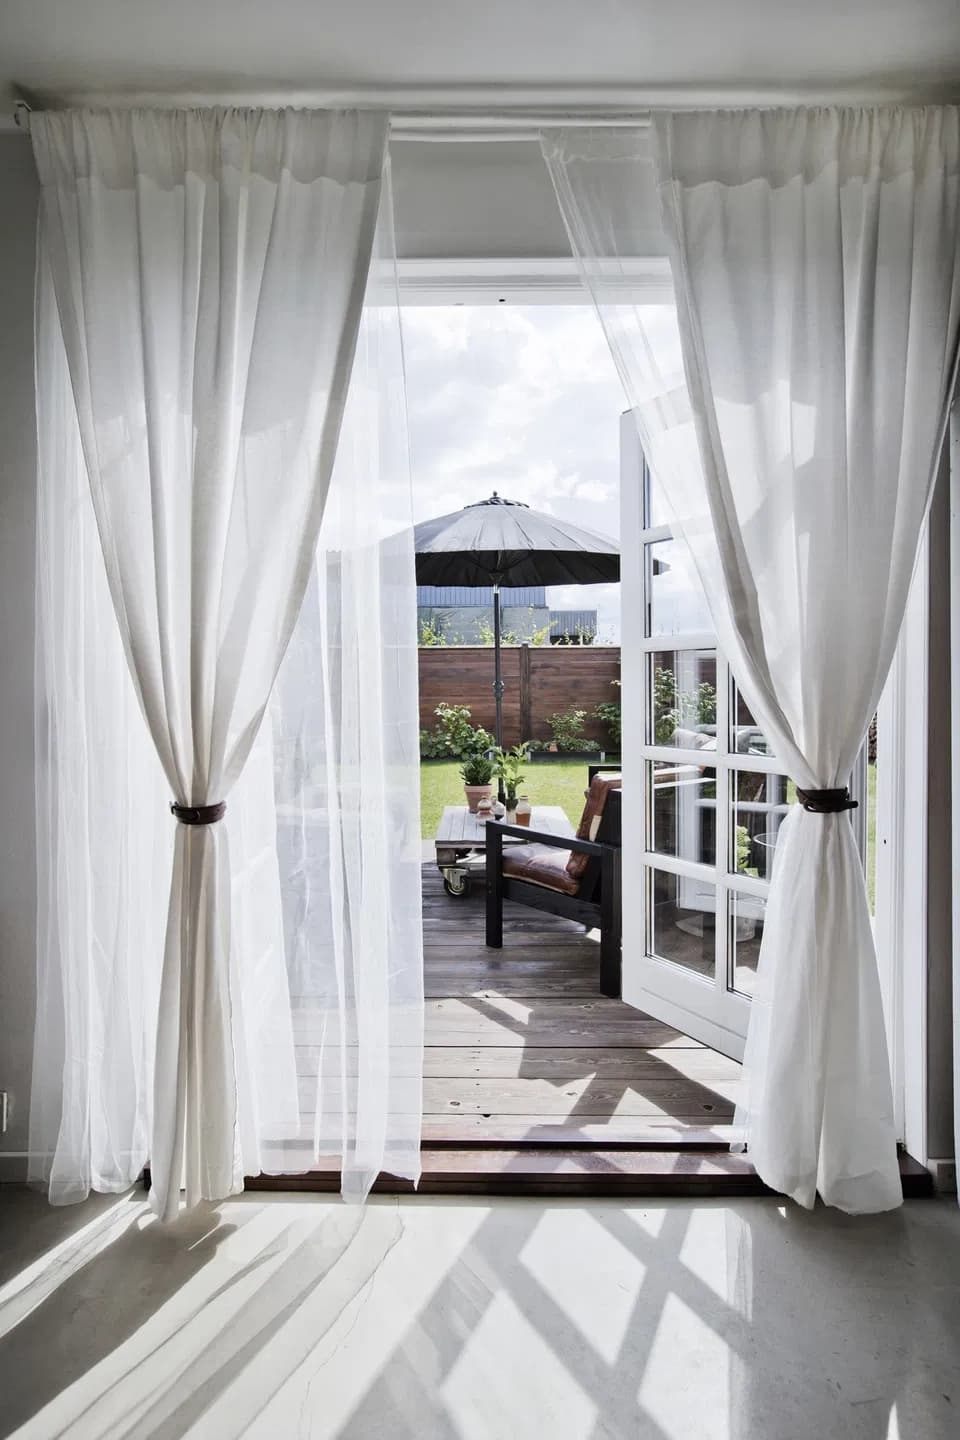 this is a back door with light curtains to a garden